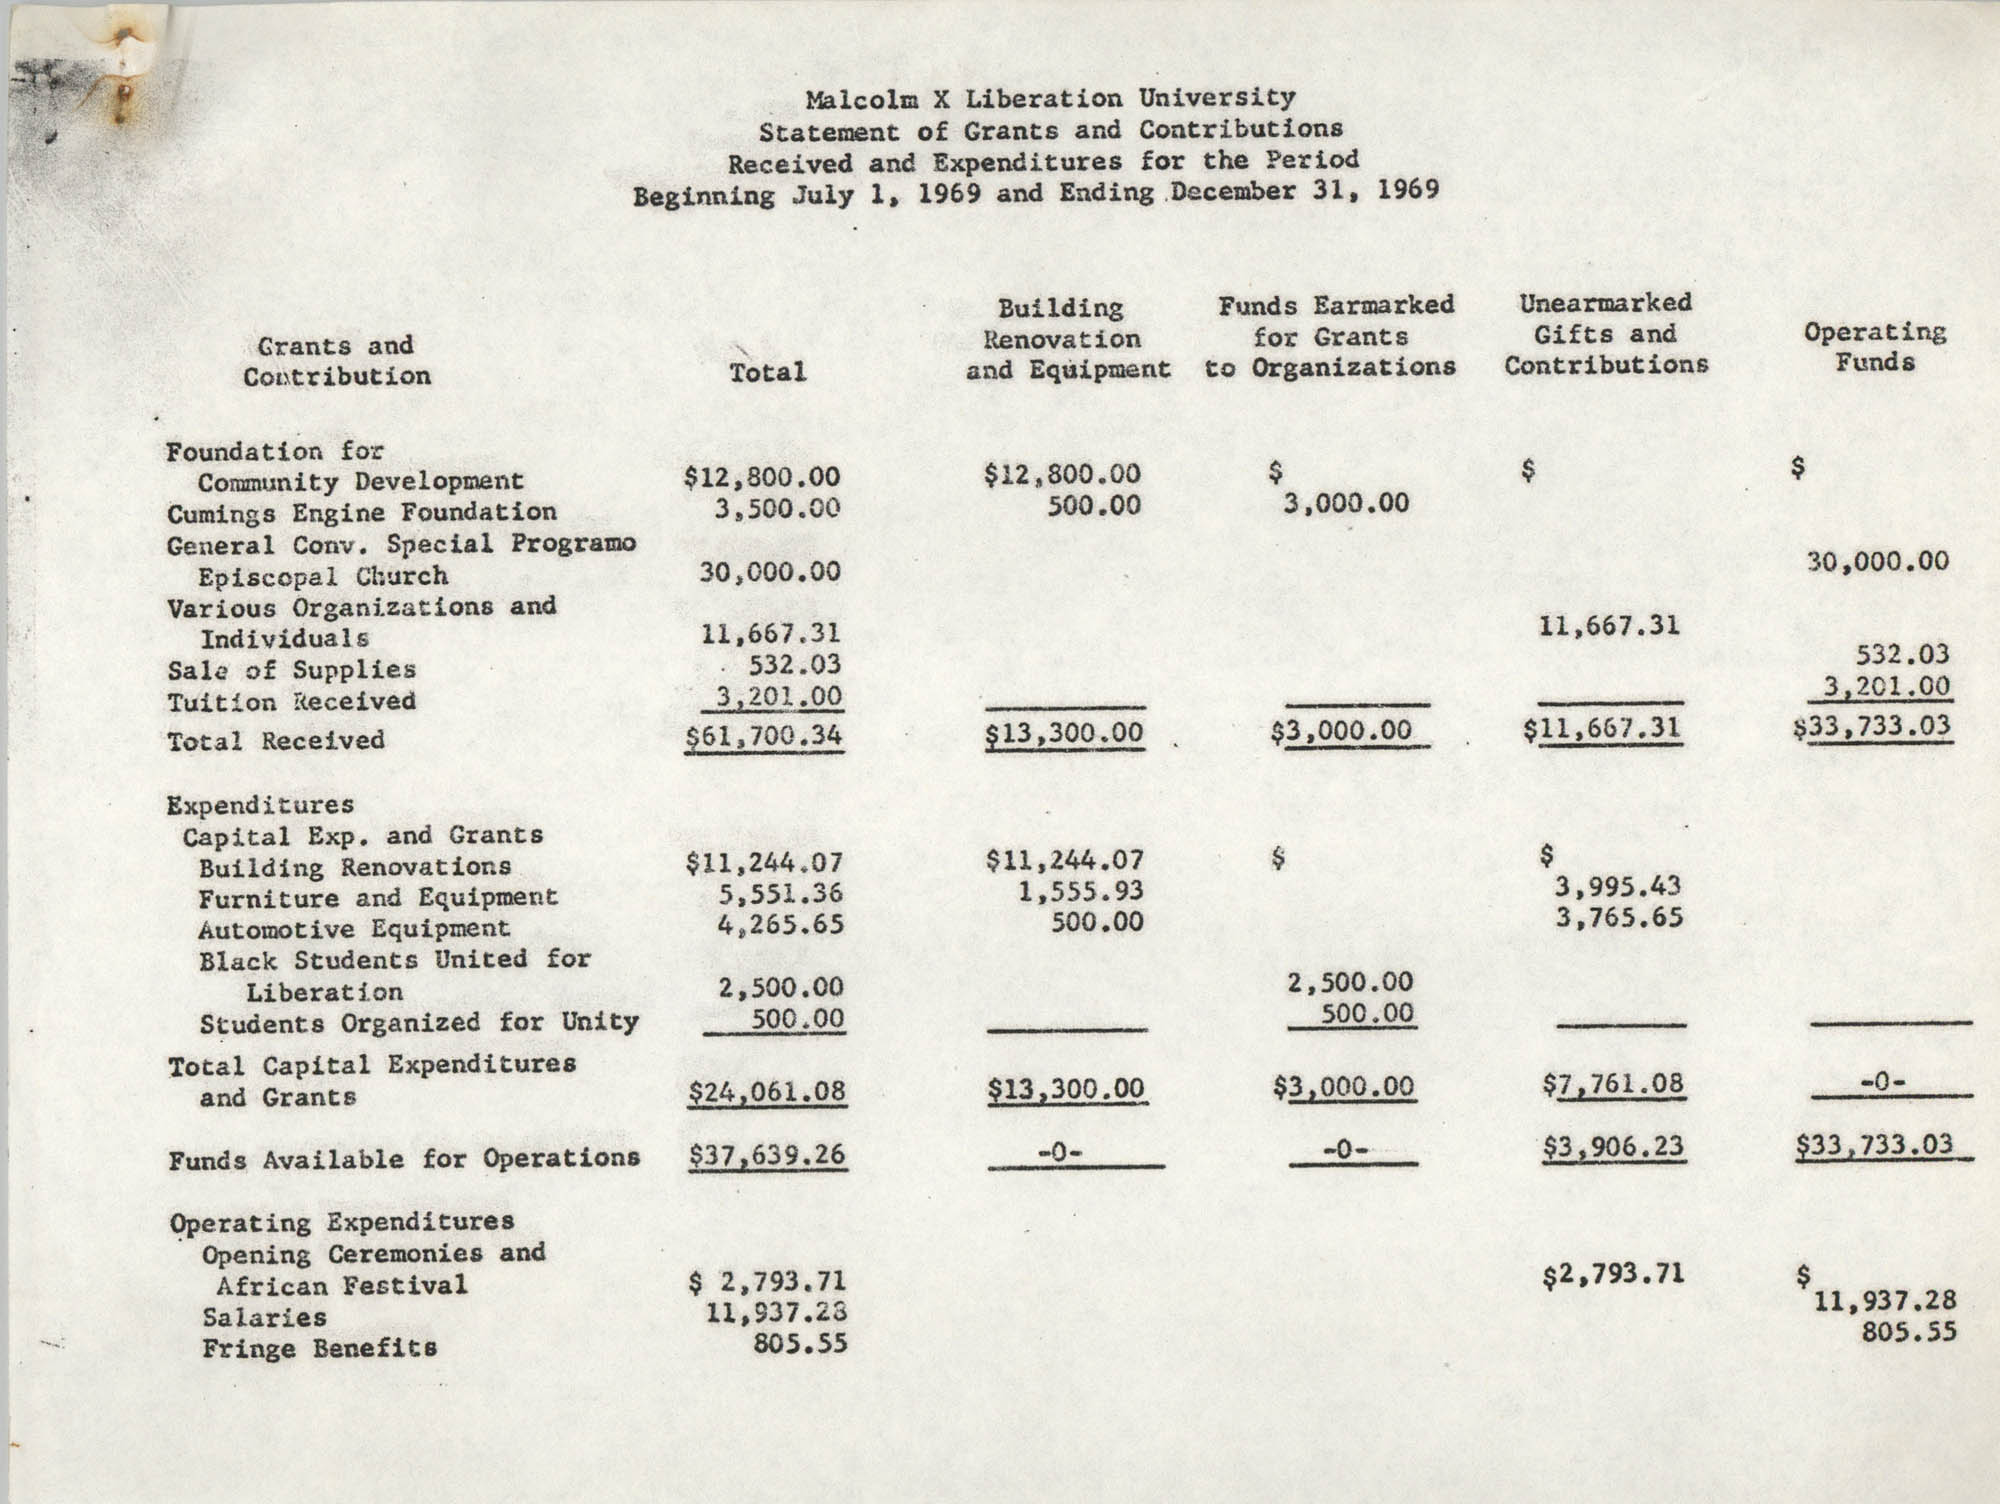 Malcolm X Liberation University Statement of Grants and Contributions, July 1 to December 31, 1969